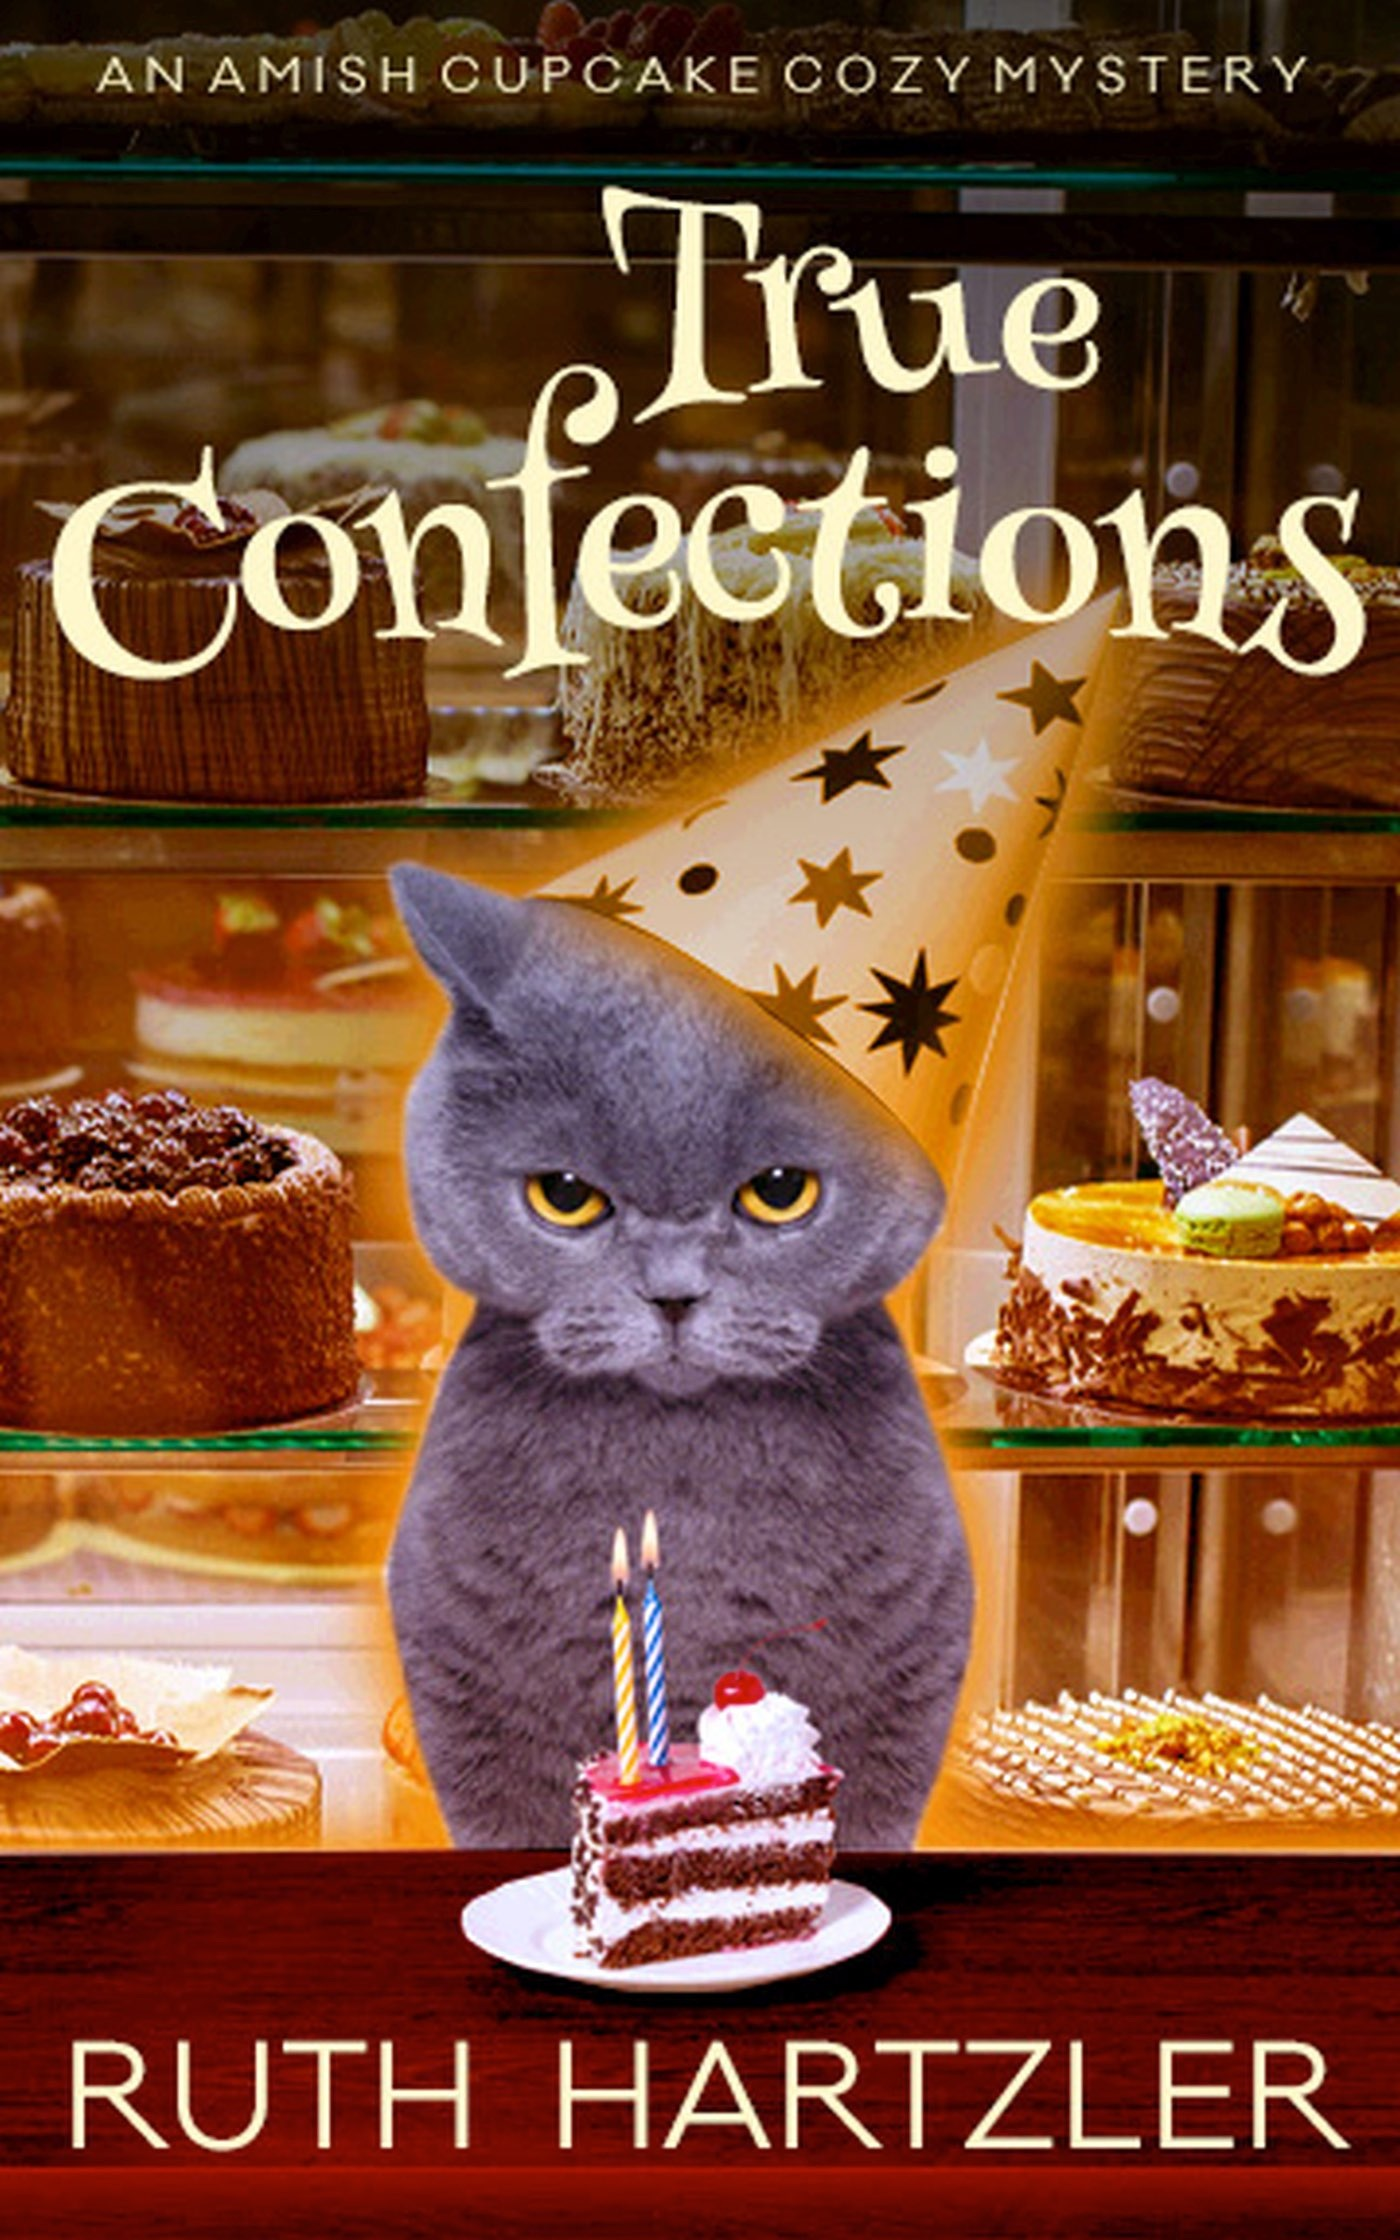 True Confections - An Amish Cupcake Cozy Mystery Book 1True Confections is Book 1 in the Amish Cupcake Cozy Mystery seriesWhen her husband of thirty years runs off with a college student named Cherri, Jane Delight returns to Pennsylvania to work in her Amish sister's cupcake store. Having lost everything in the divorce, Jane now finds herself sharing an apartment with two elderly ladies and their quirky cat. But there is no time to despair. A man is murdered in the cupcake store, and now Jane and her sister, Rebecca, are the prime suspects. Enter brooding detective Damon McCloud, a Scot with a tragic past and a desire for justice. Can Jane solve the murder, wrangle her new roommates, and stop herself from falling for the detective?Or will she never get her new life on track?KINDLE AND KINDLE UNLIMITED